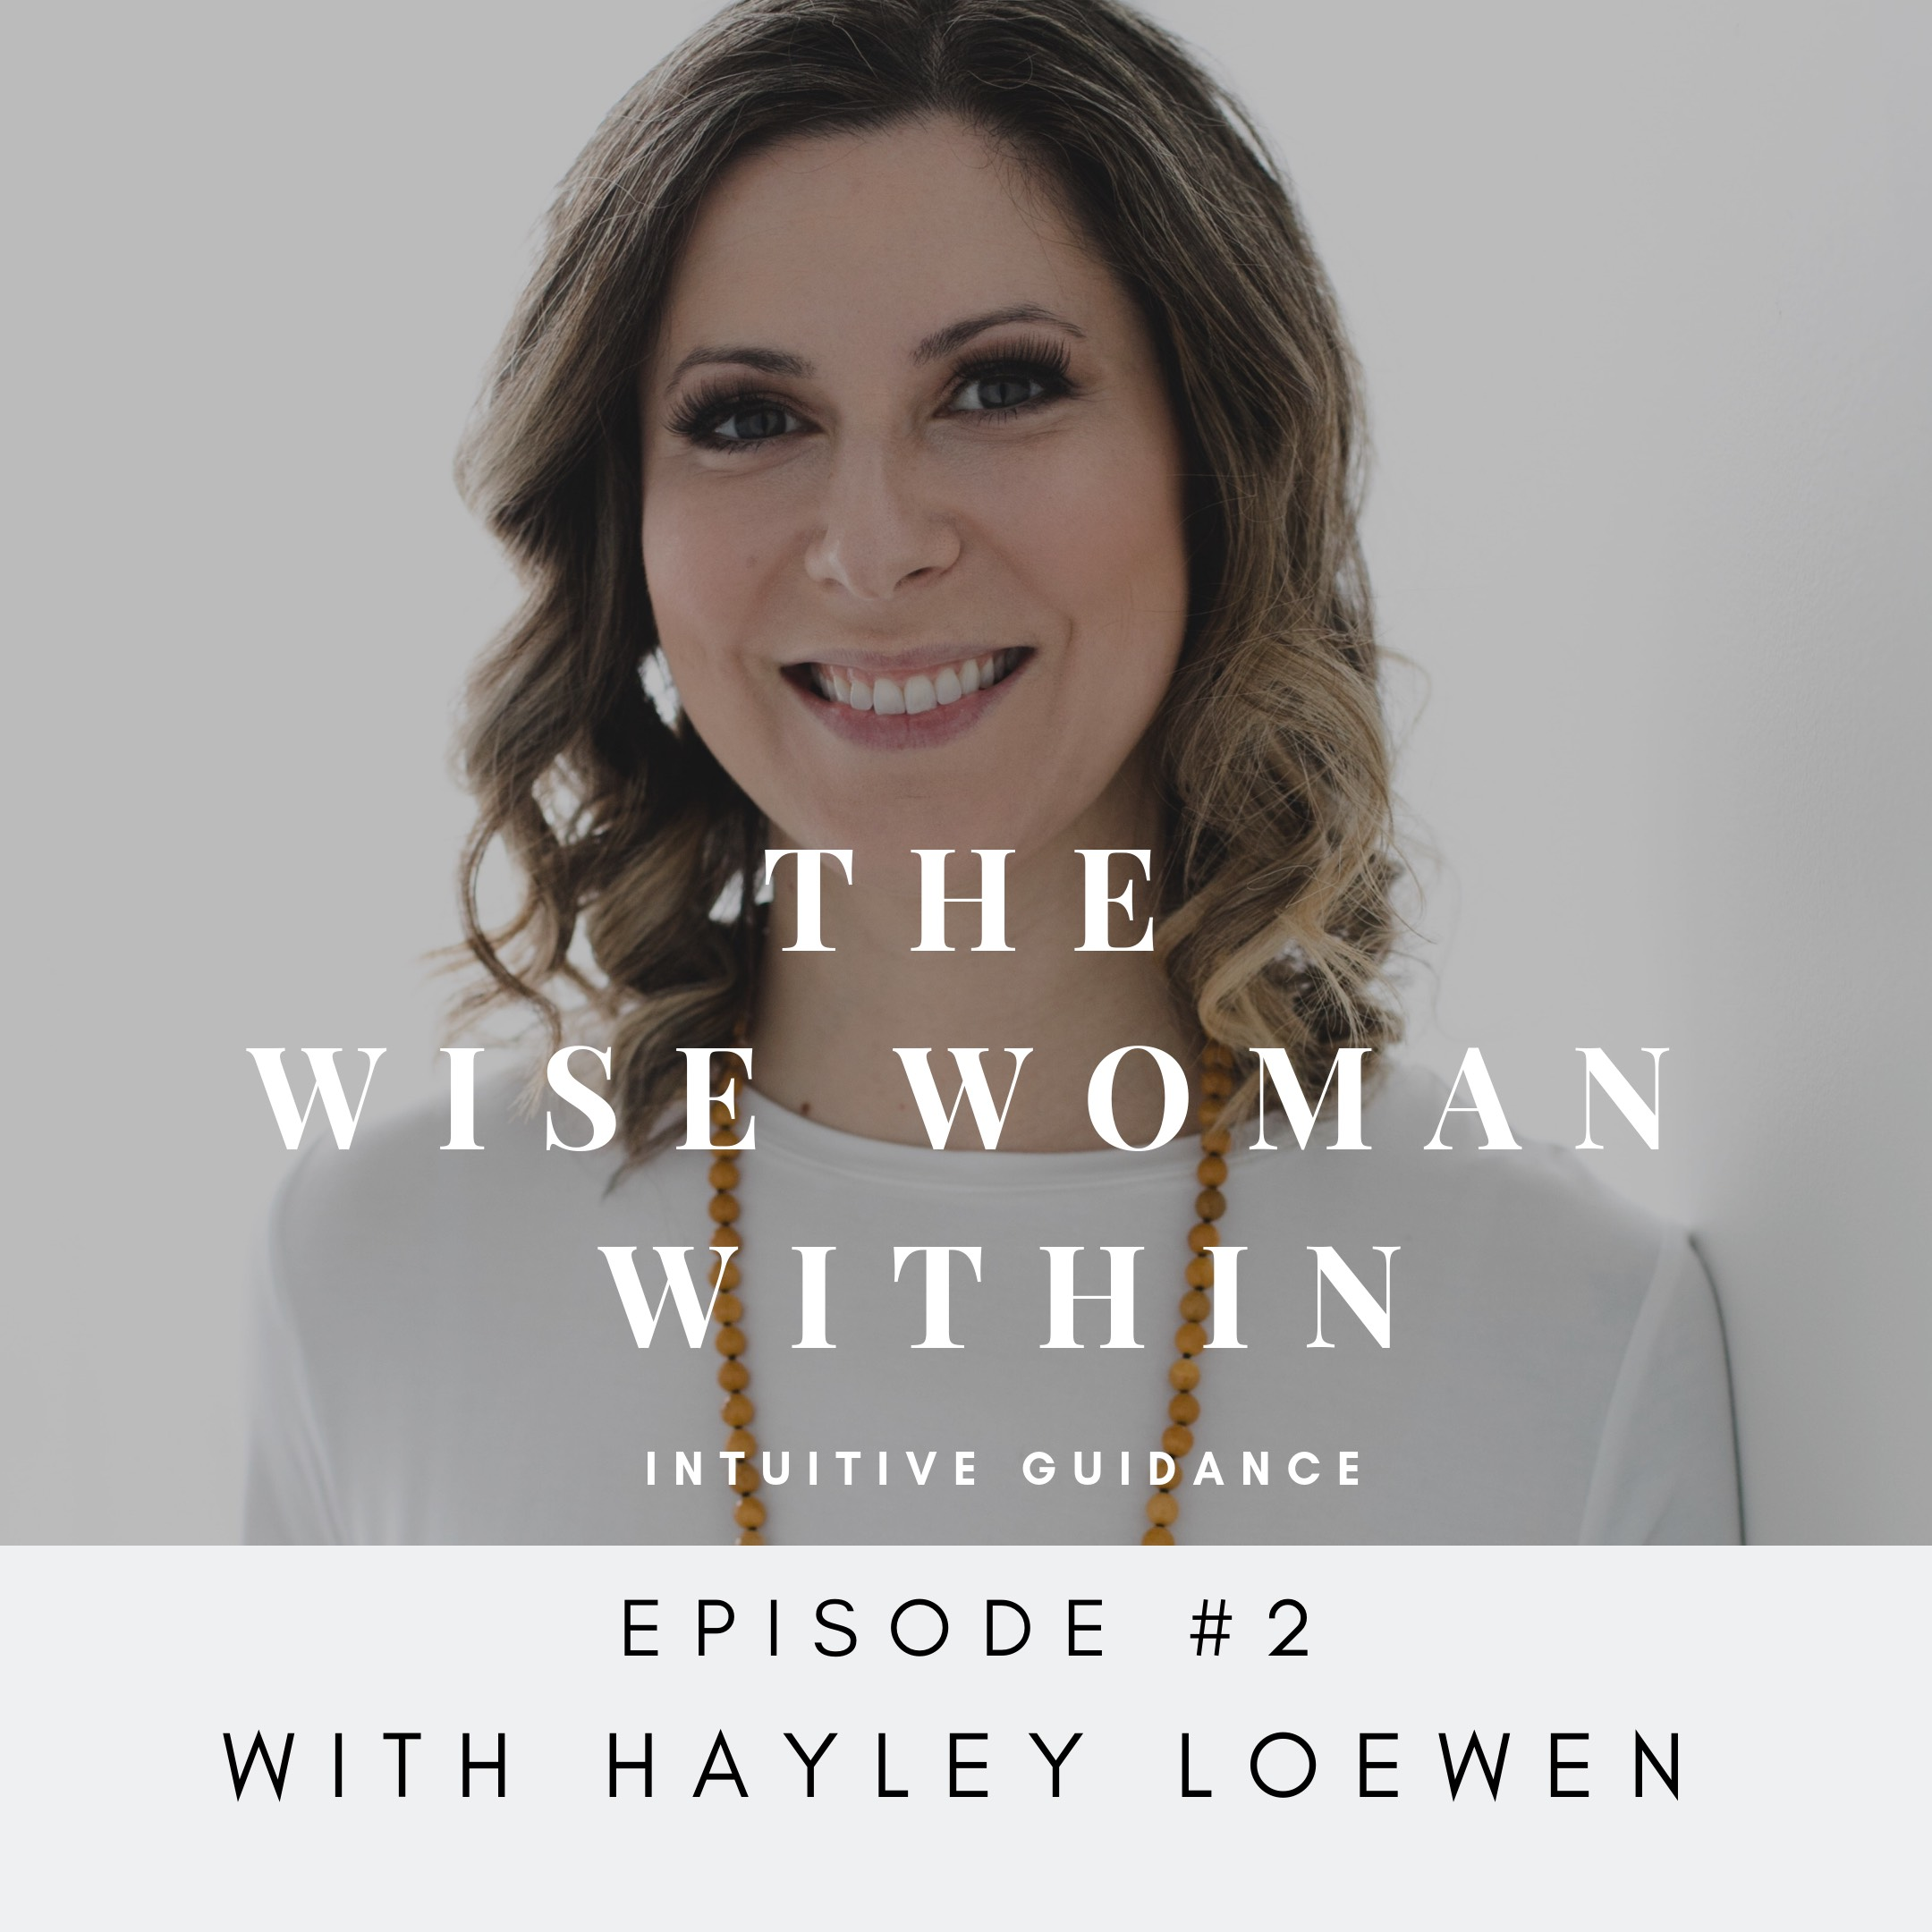 Hayley Loewen Episode 2 The Wise Woman Within Podcast